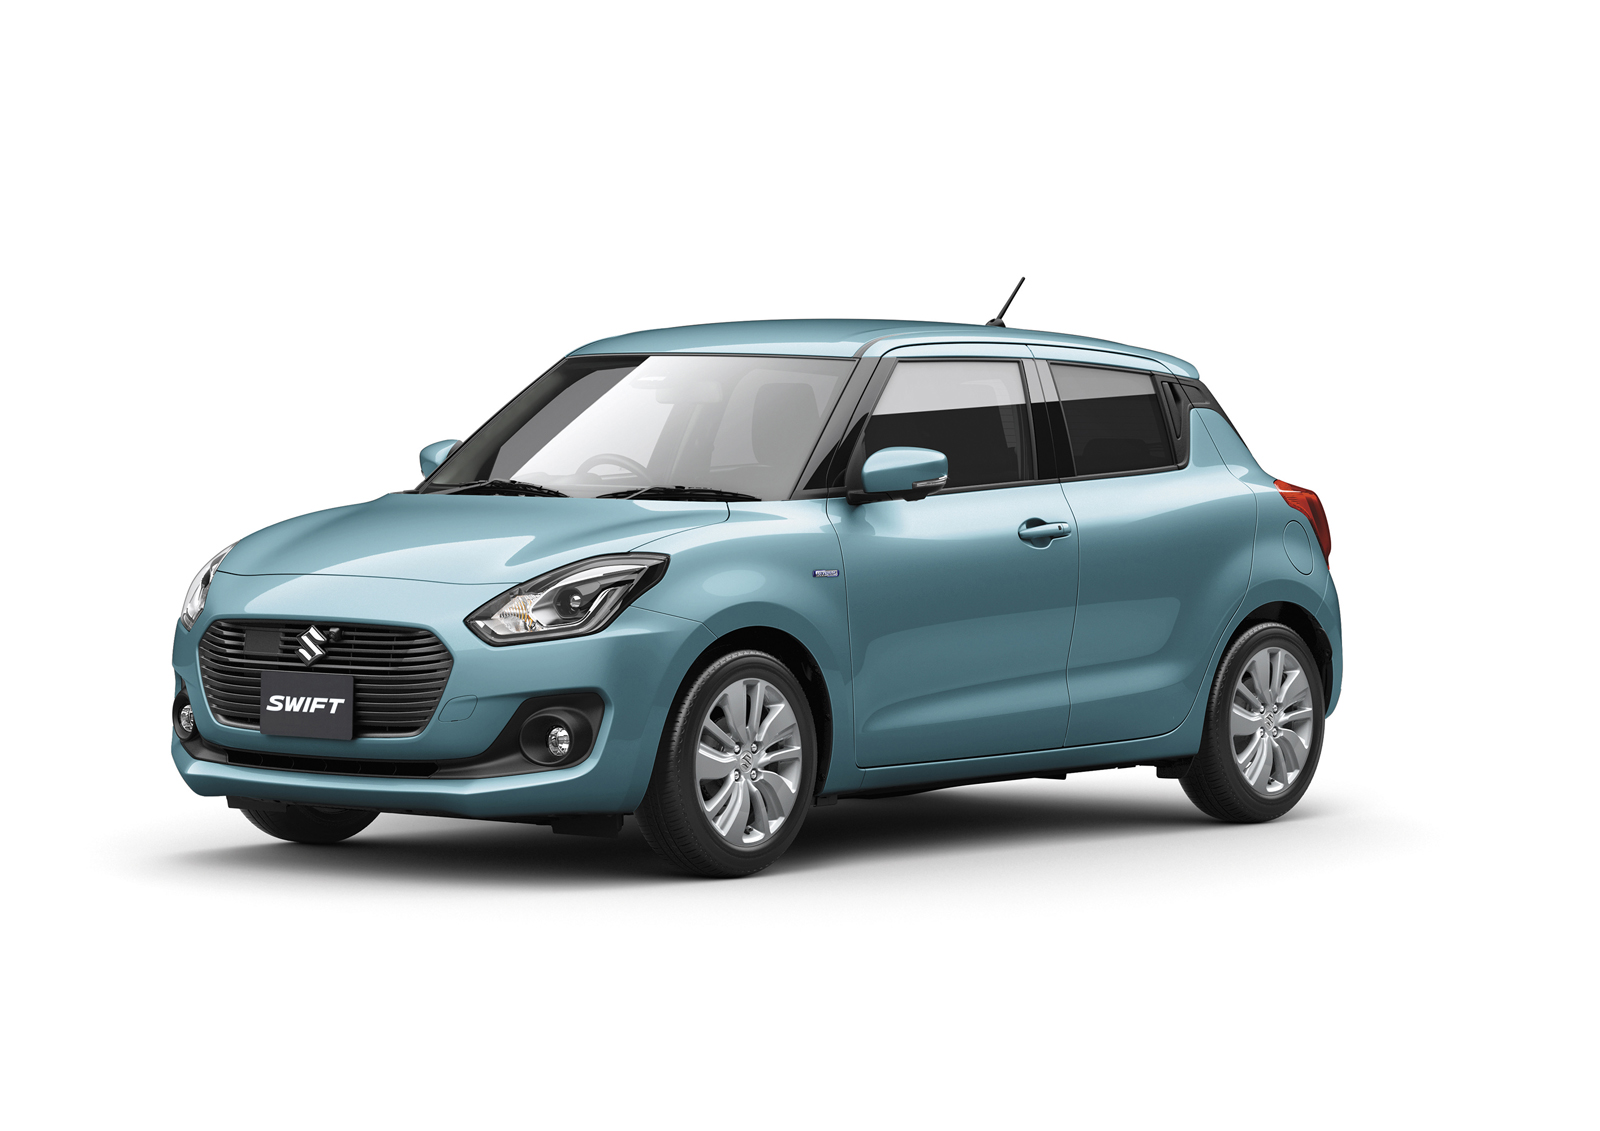 Suzuki Swift 2017 (5)